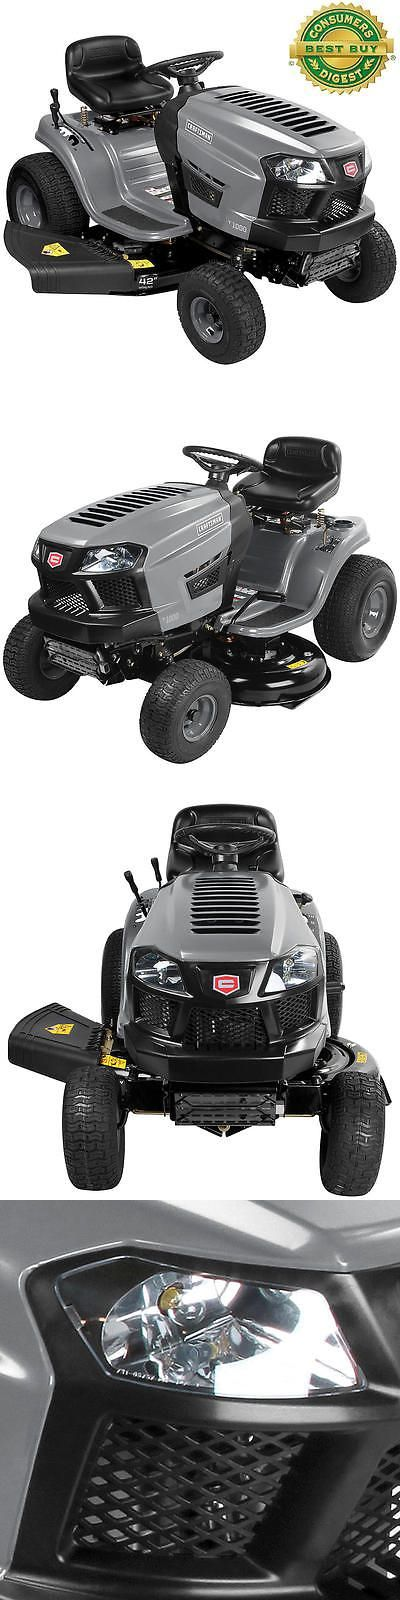 Riding Mowers 177021: Craftsman Riding Lawn Mower 42 Cut 7 Speed 420Cc Delieverd To Your Door -> BUY IT NOW ONLY: $1599.95 on eBay!